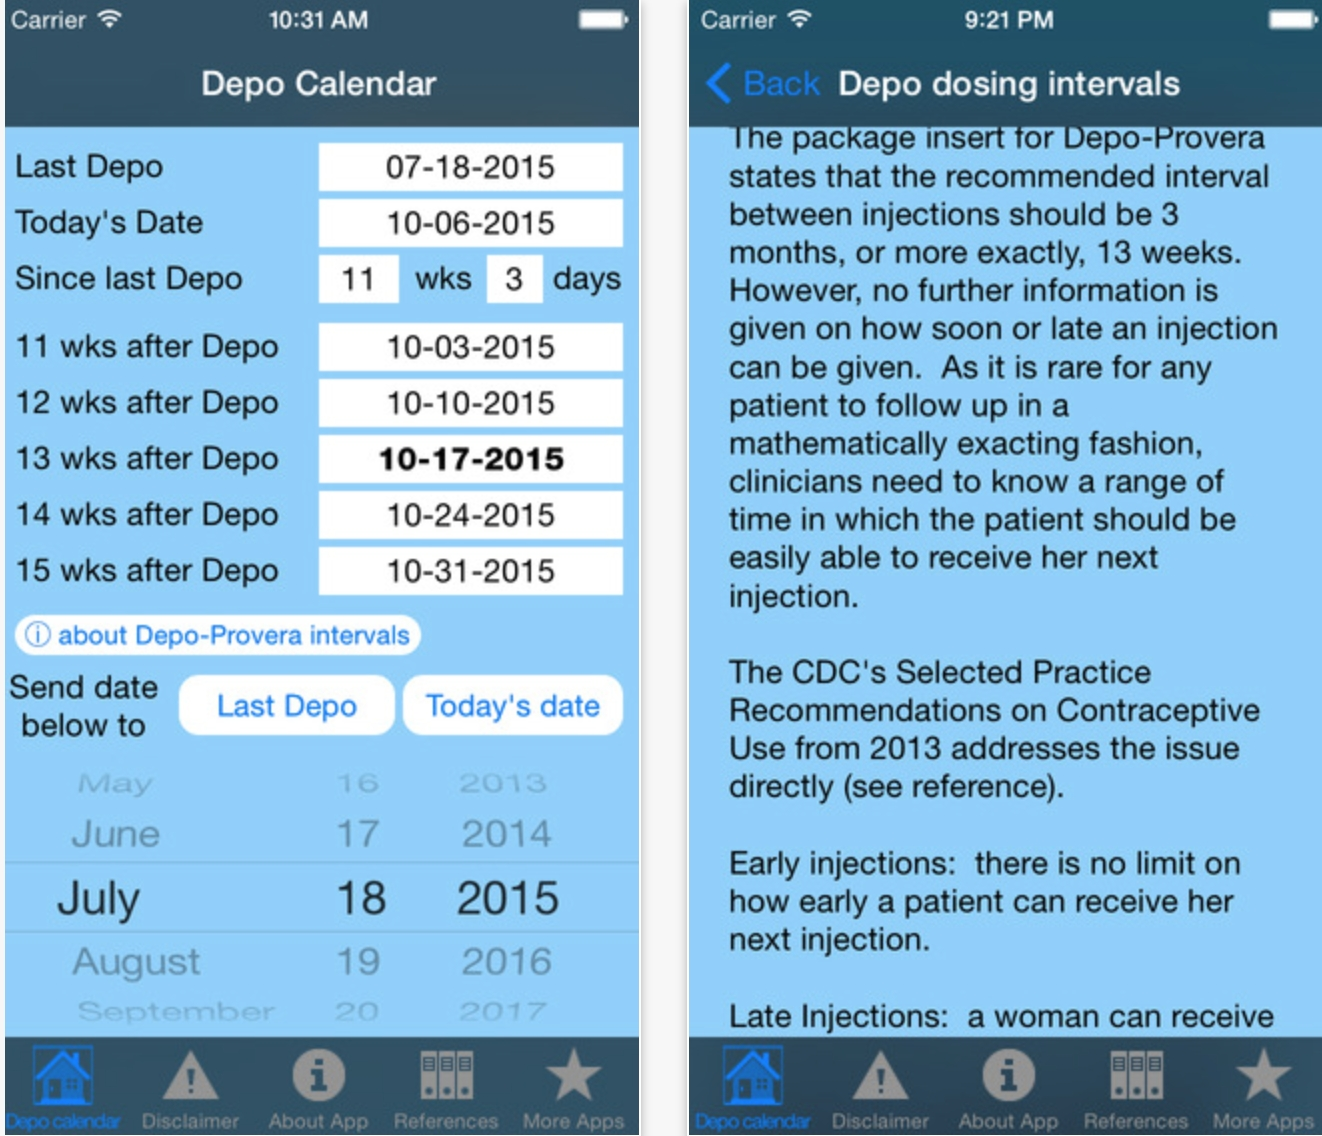 Depo Calendar App Could Significantly Improve Contraception  Depo-Provera 14 Week Schedule